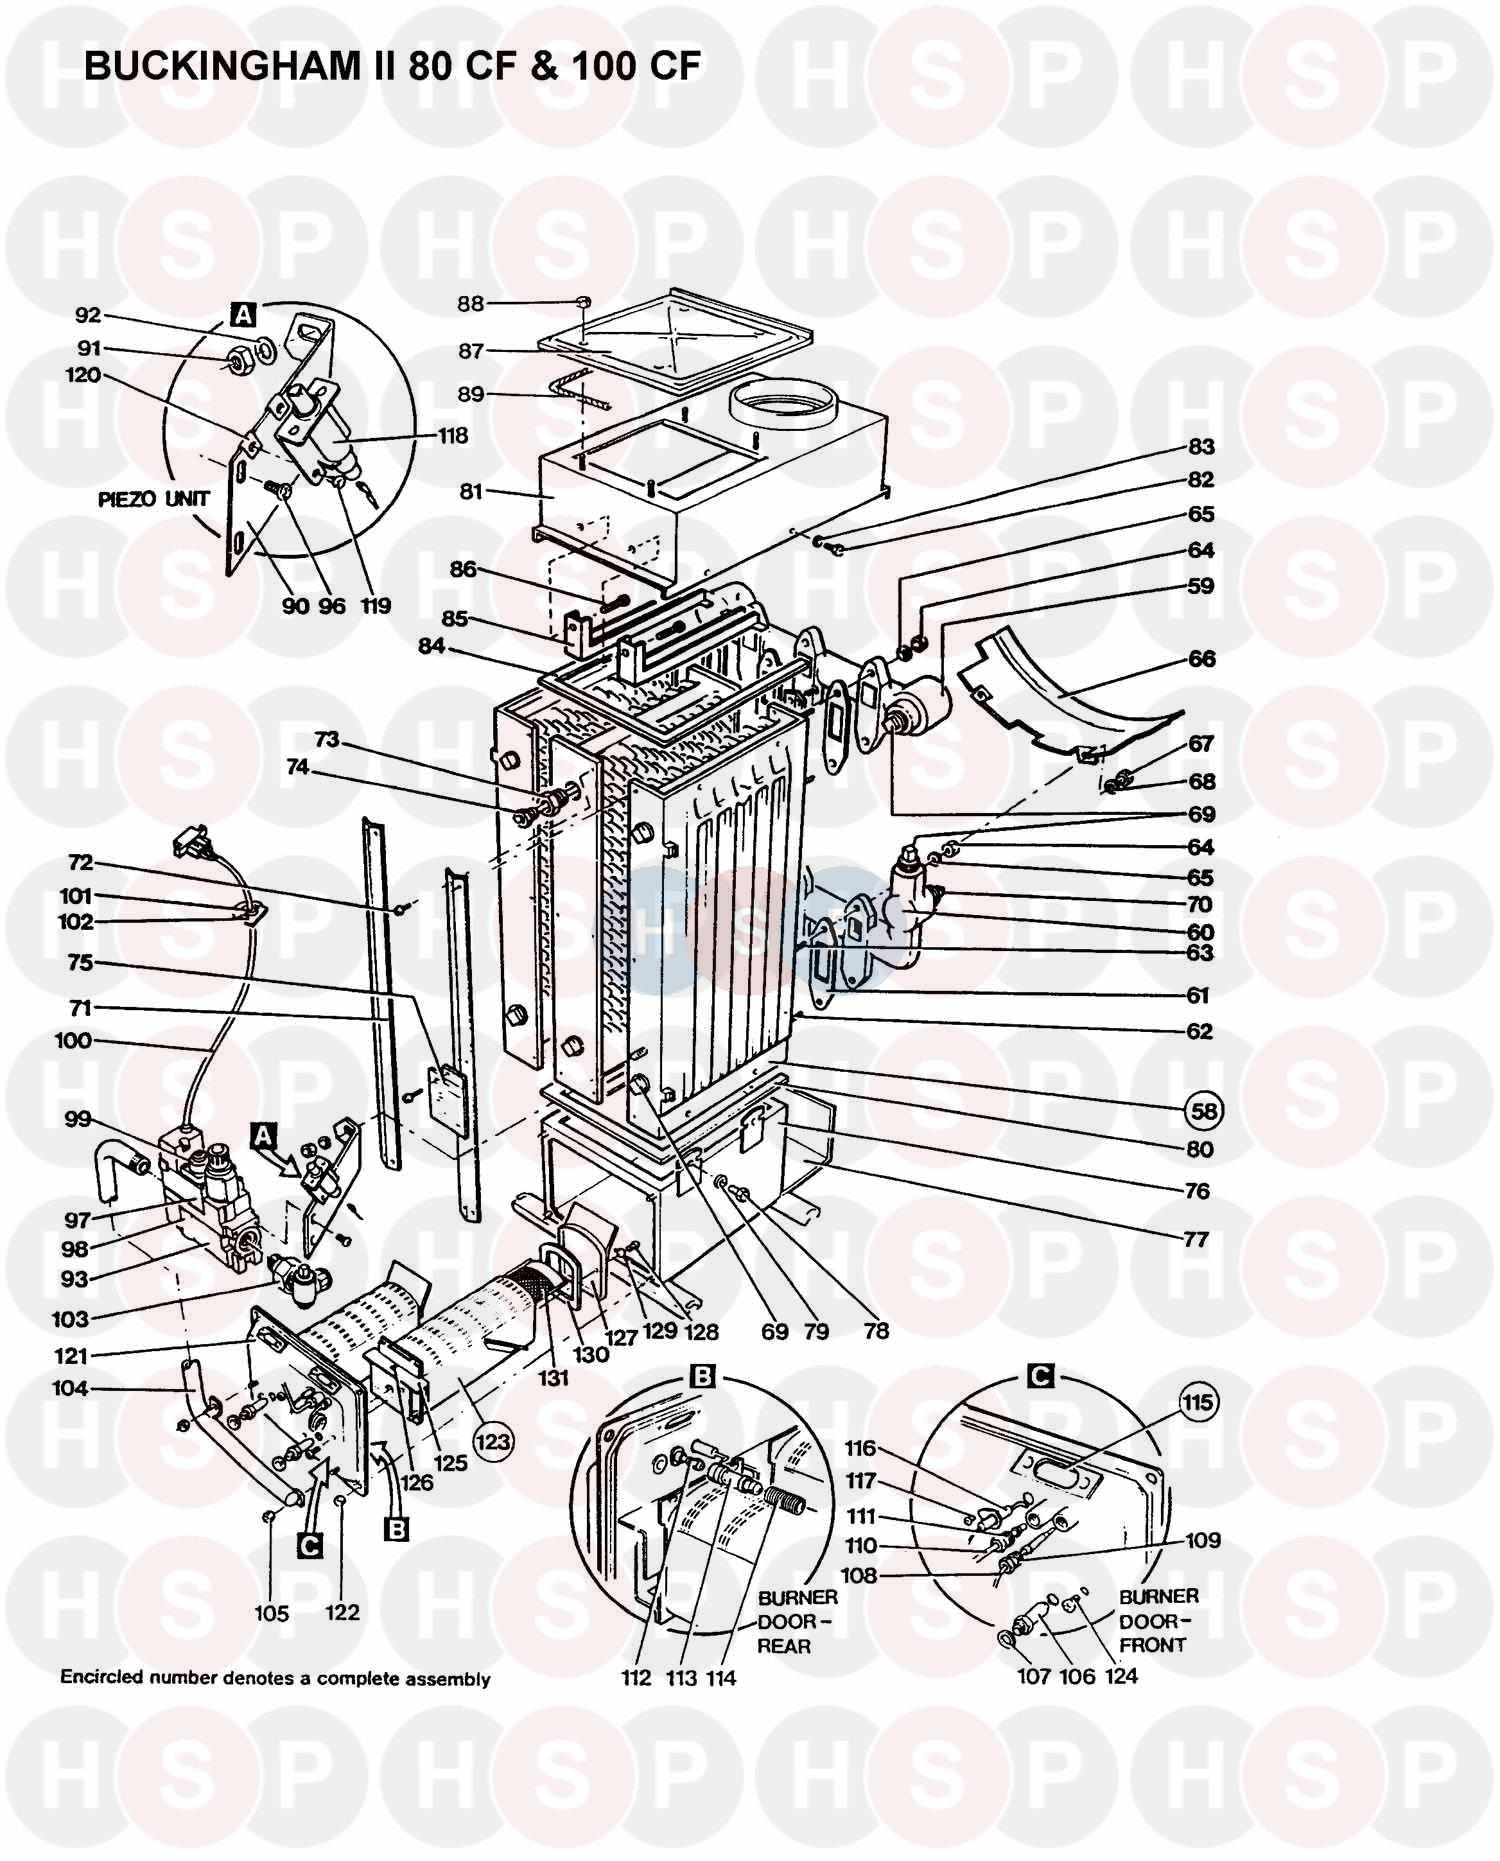 Halstead BUCKINGHAM II 80 CF (BOILER ASSEMBLY 1) Diagram